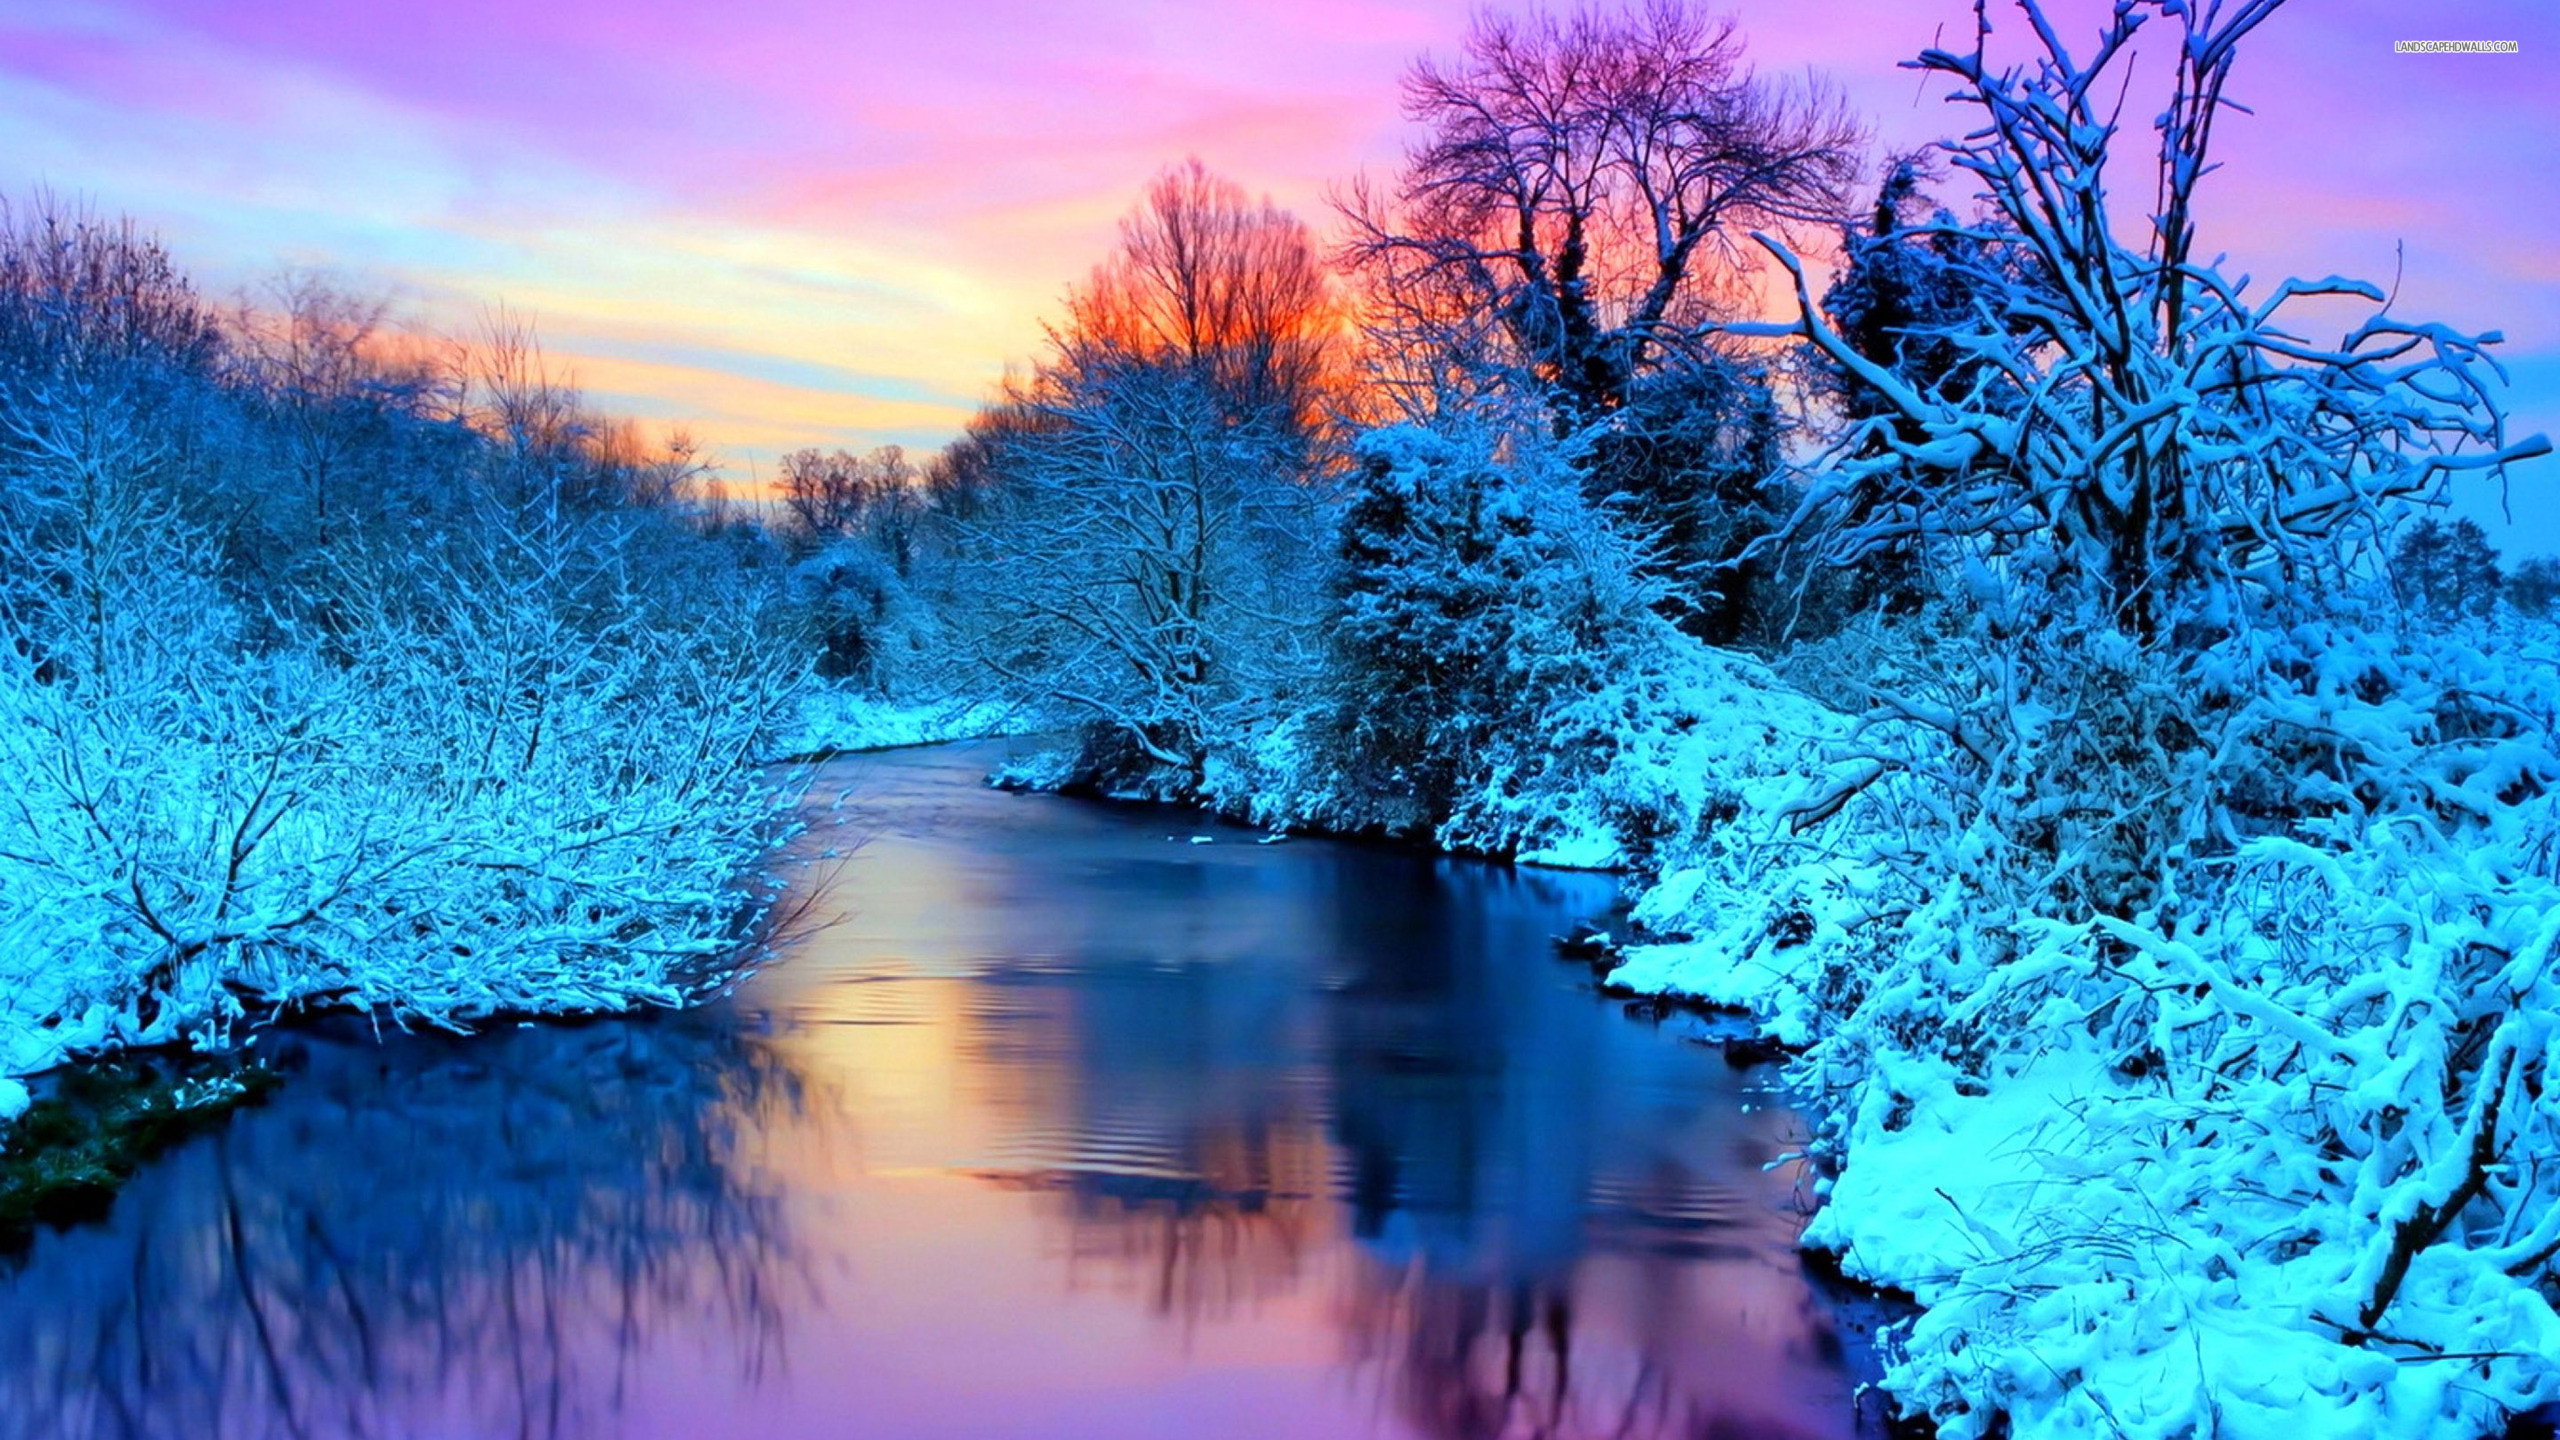 Winter Scenic Wallpaper (60+ Images